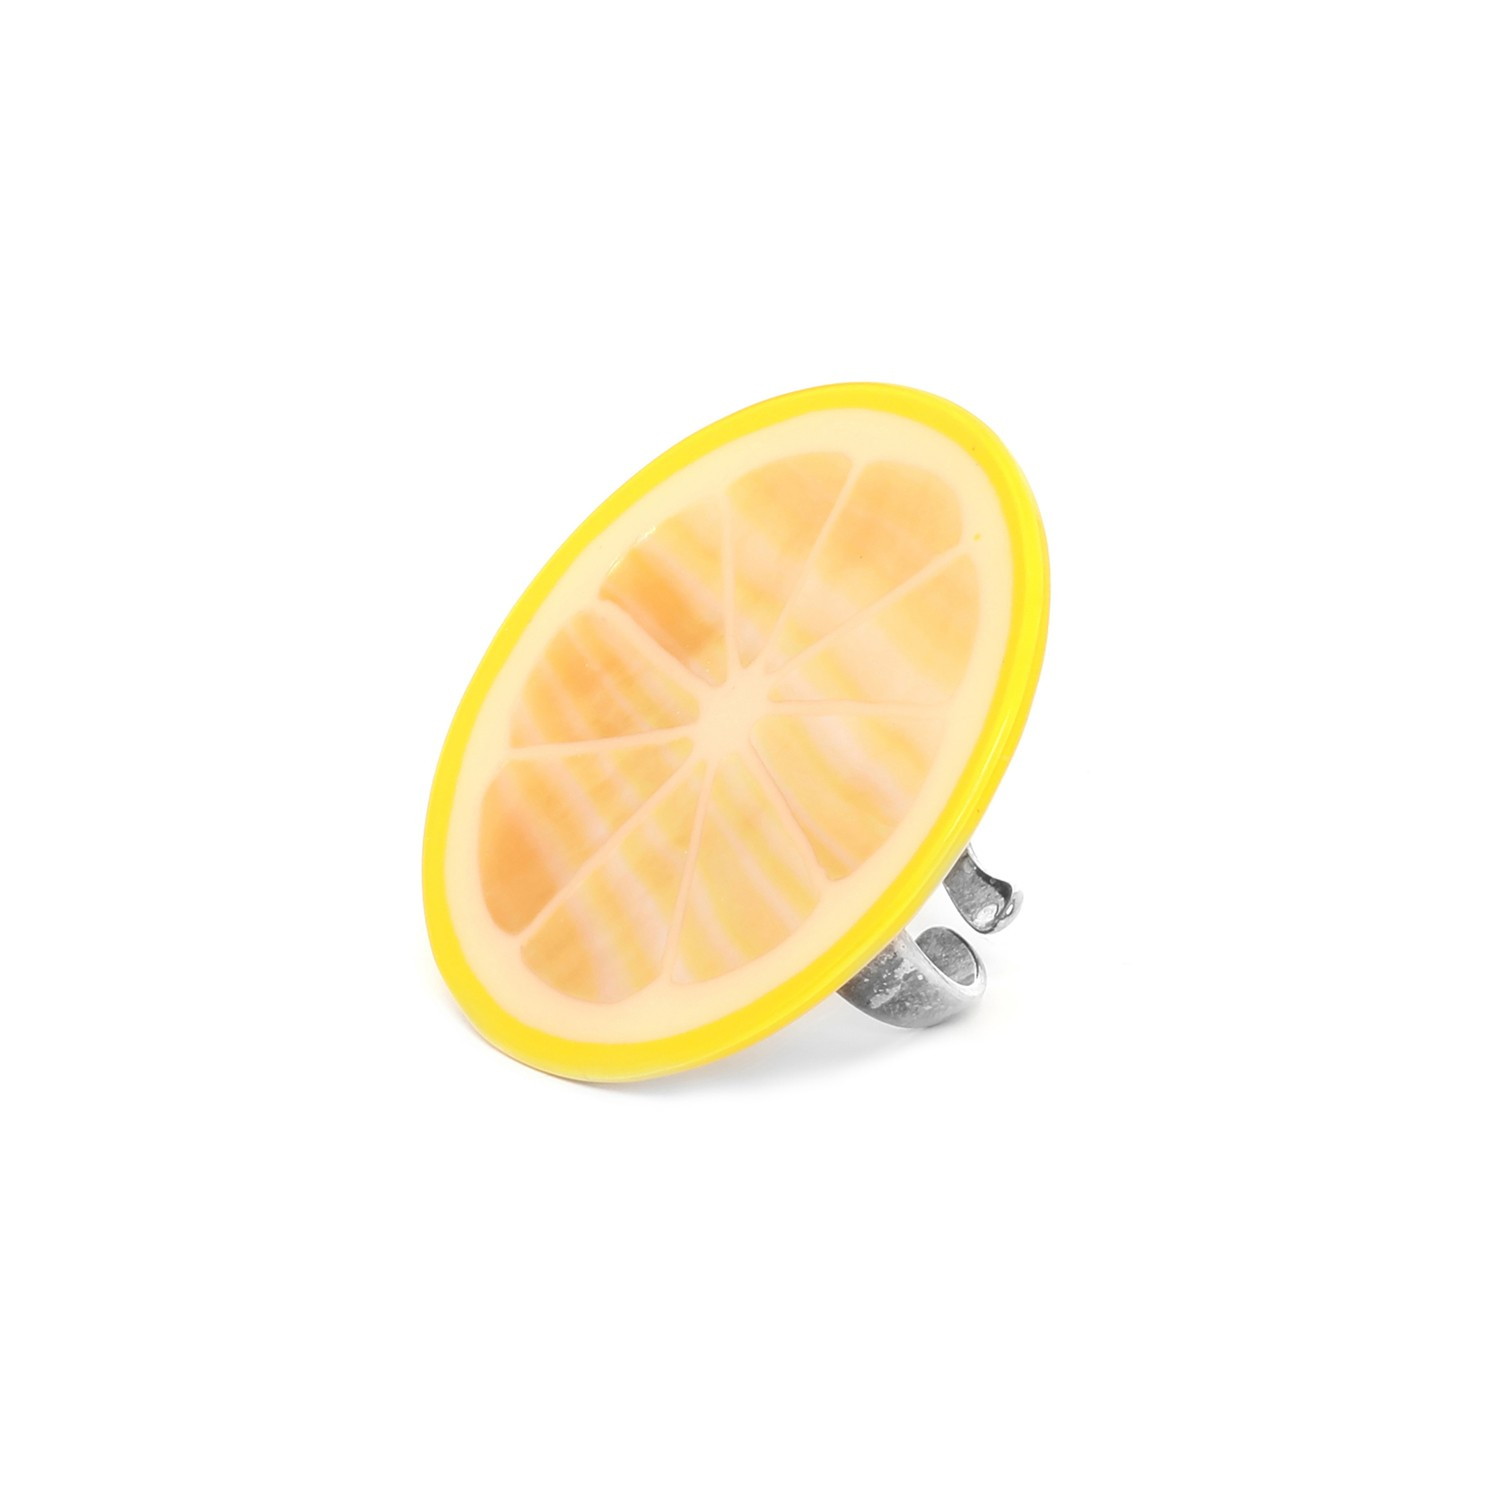 CITRUS Anillo ajustable grande